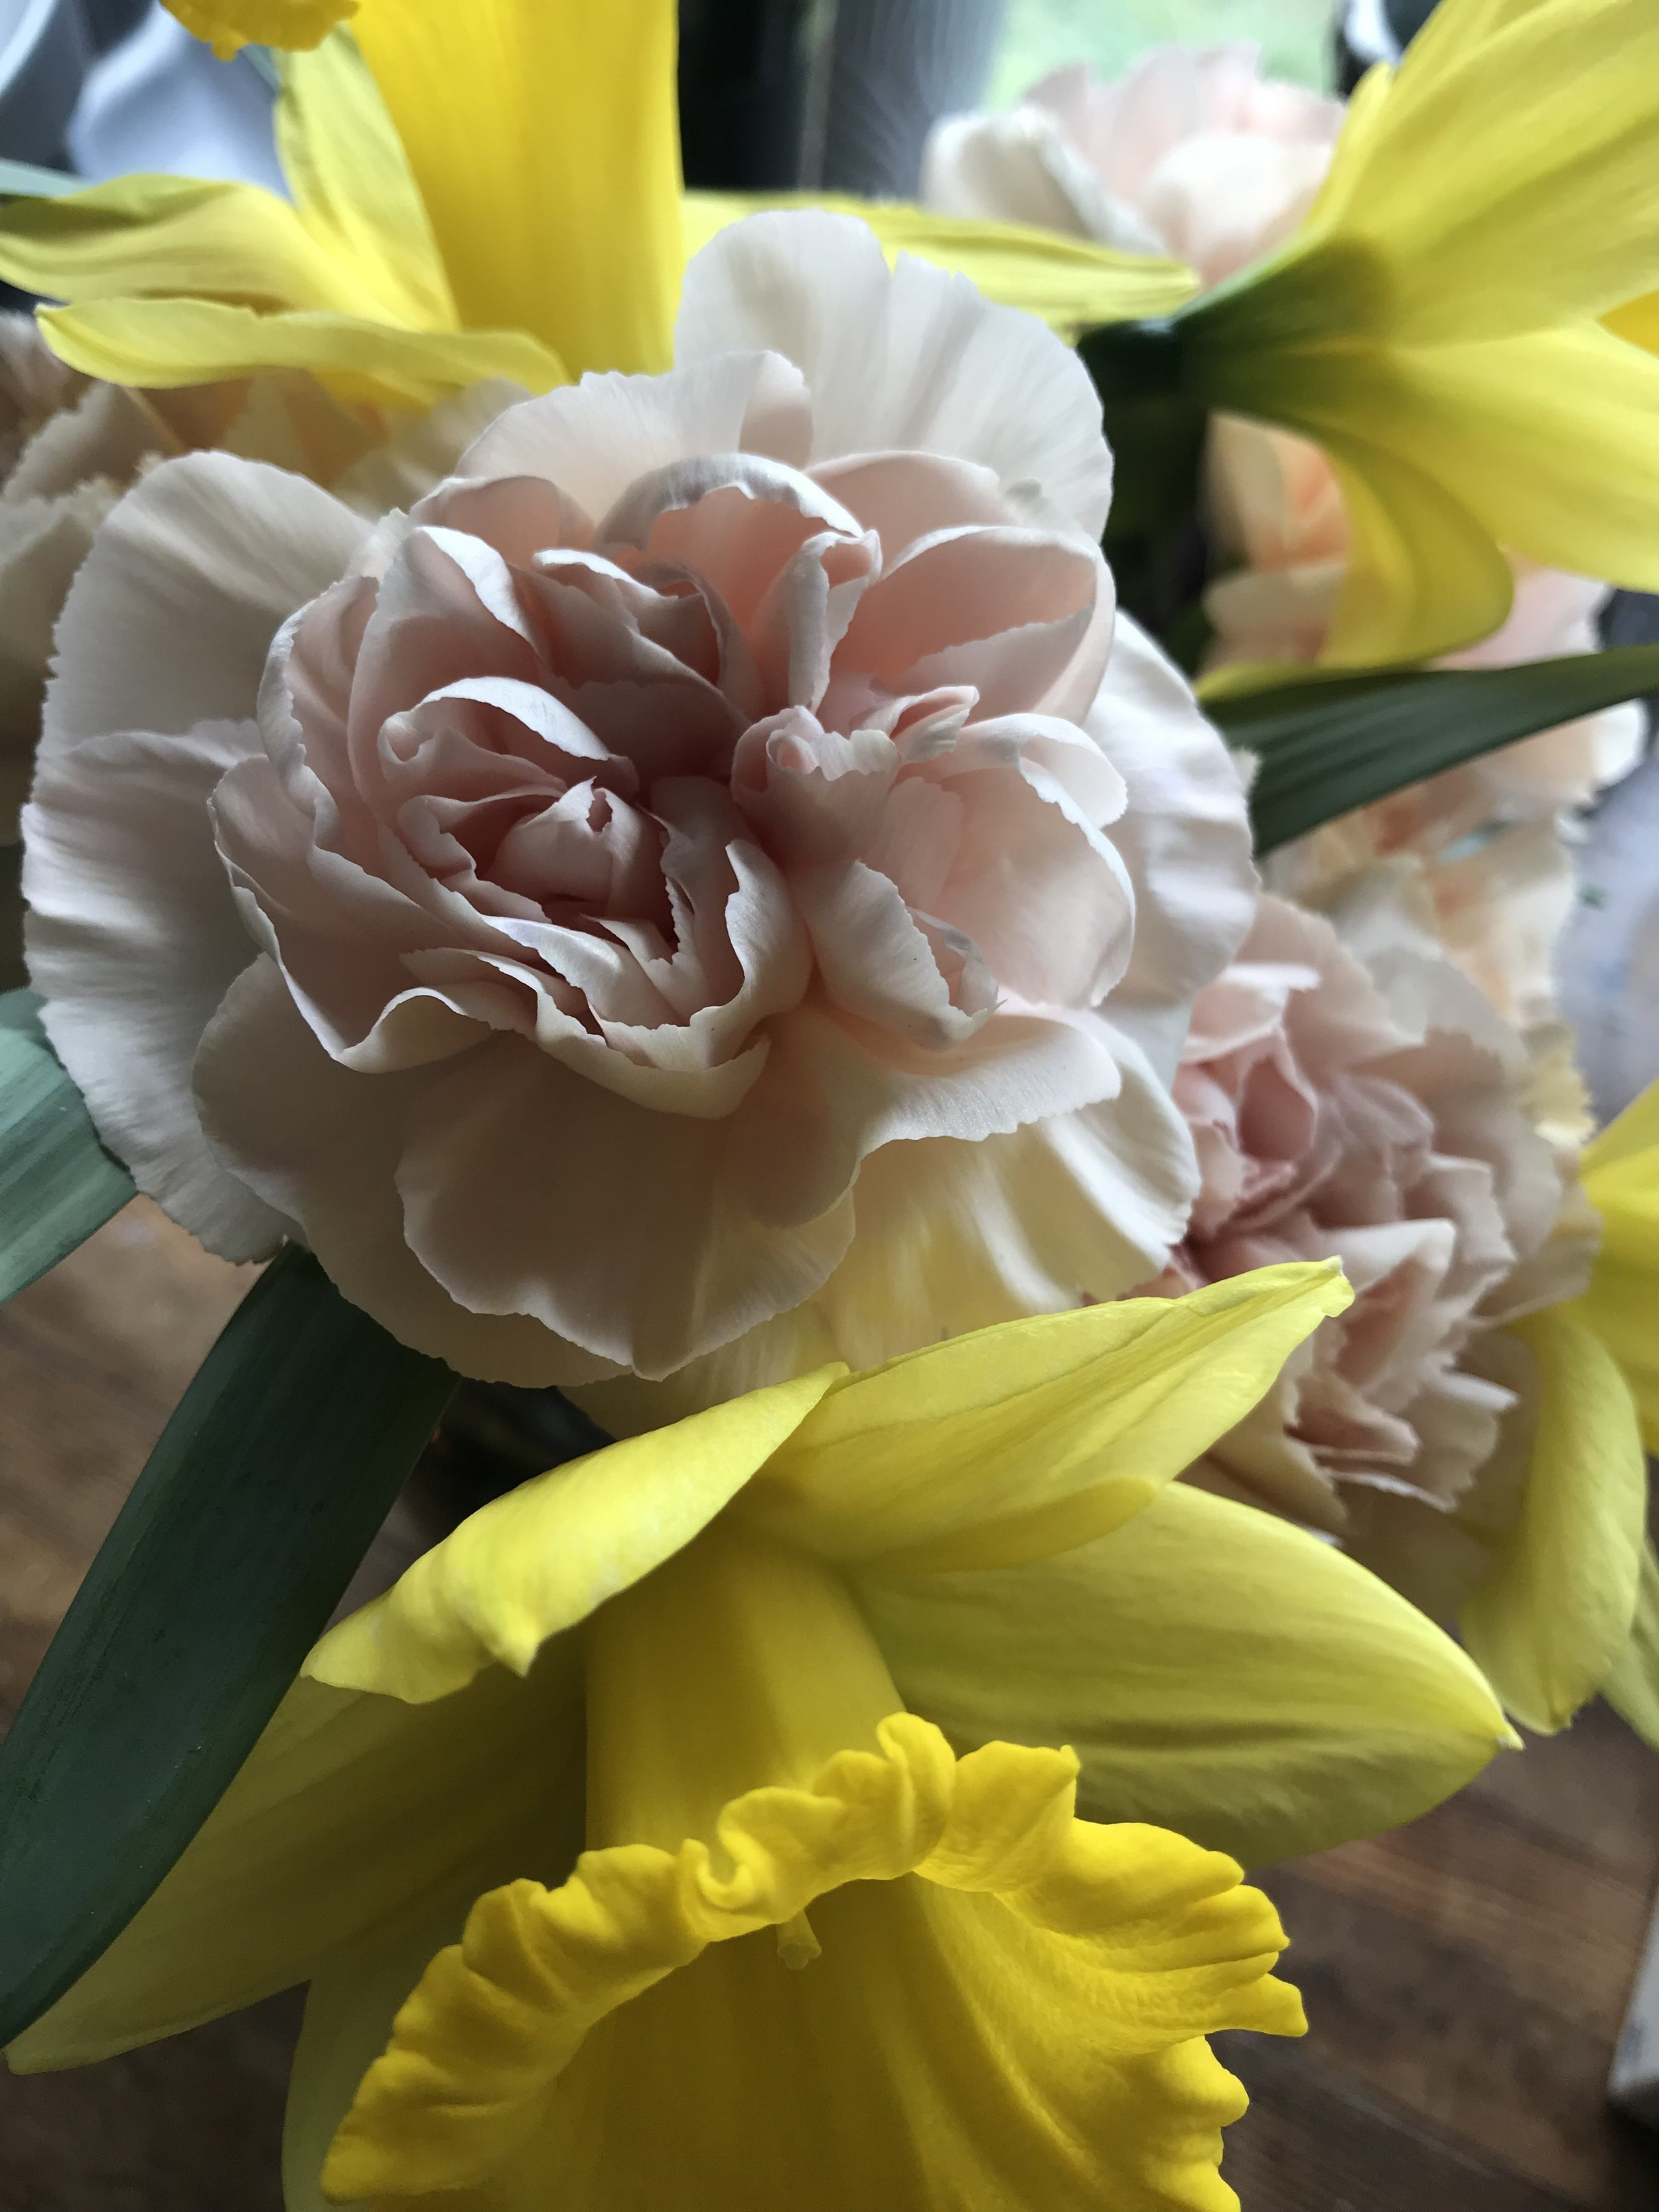 I actually love carnations. I had the Hypnosis variety in my wedding bouquet and I couldn't pass up these frilly peachy ones (or the daffodils) at the grocery store.